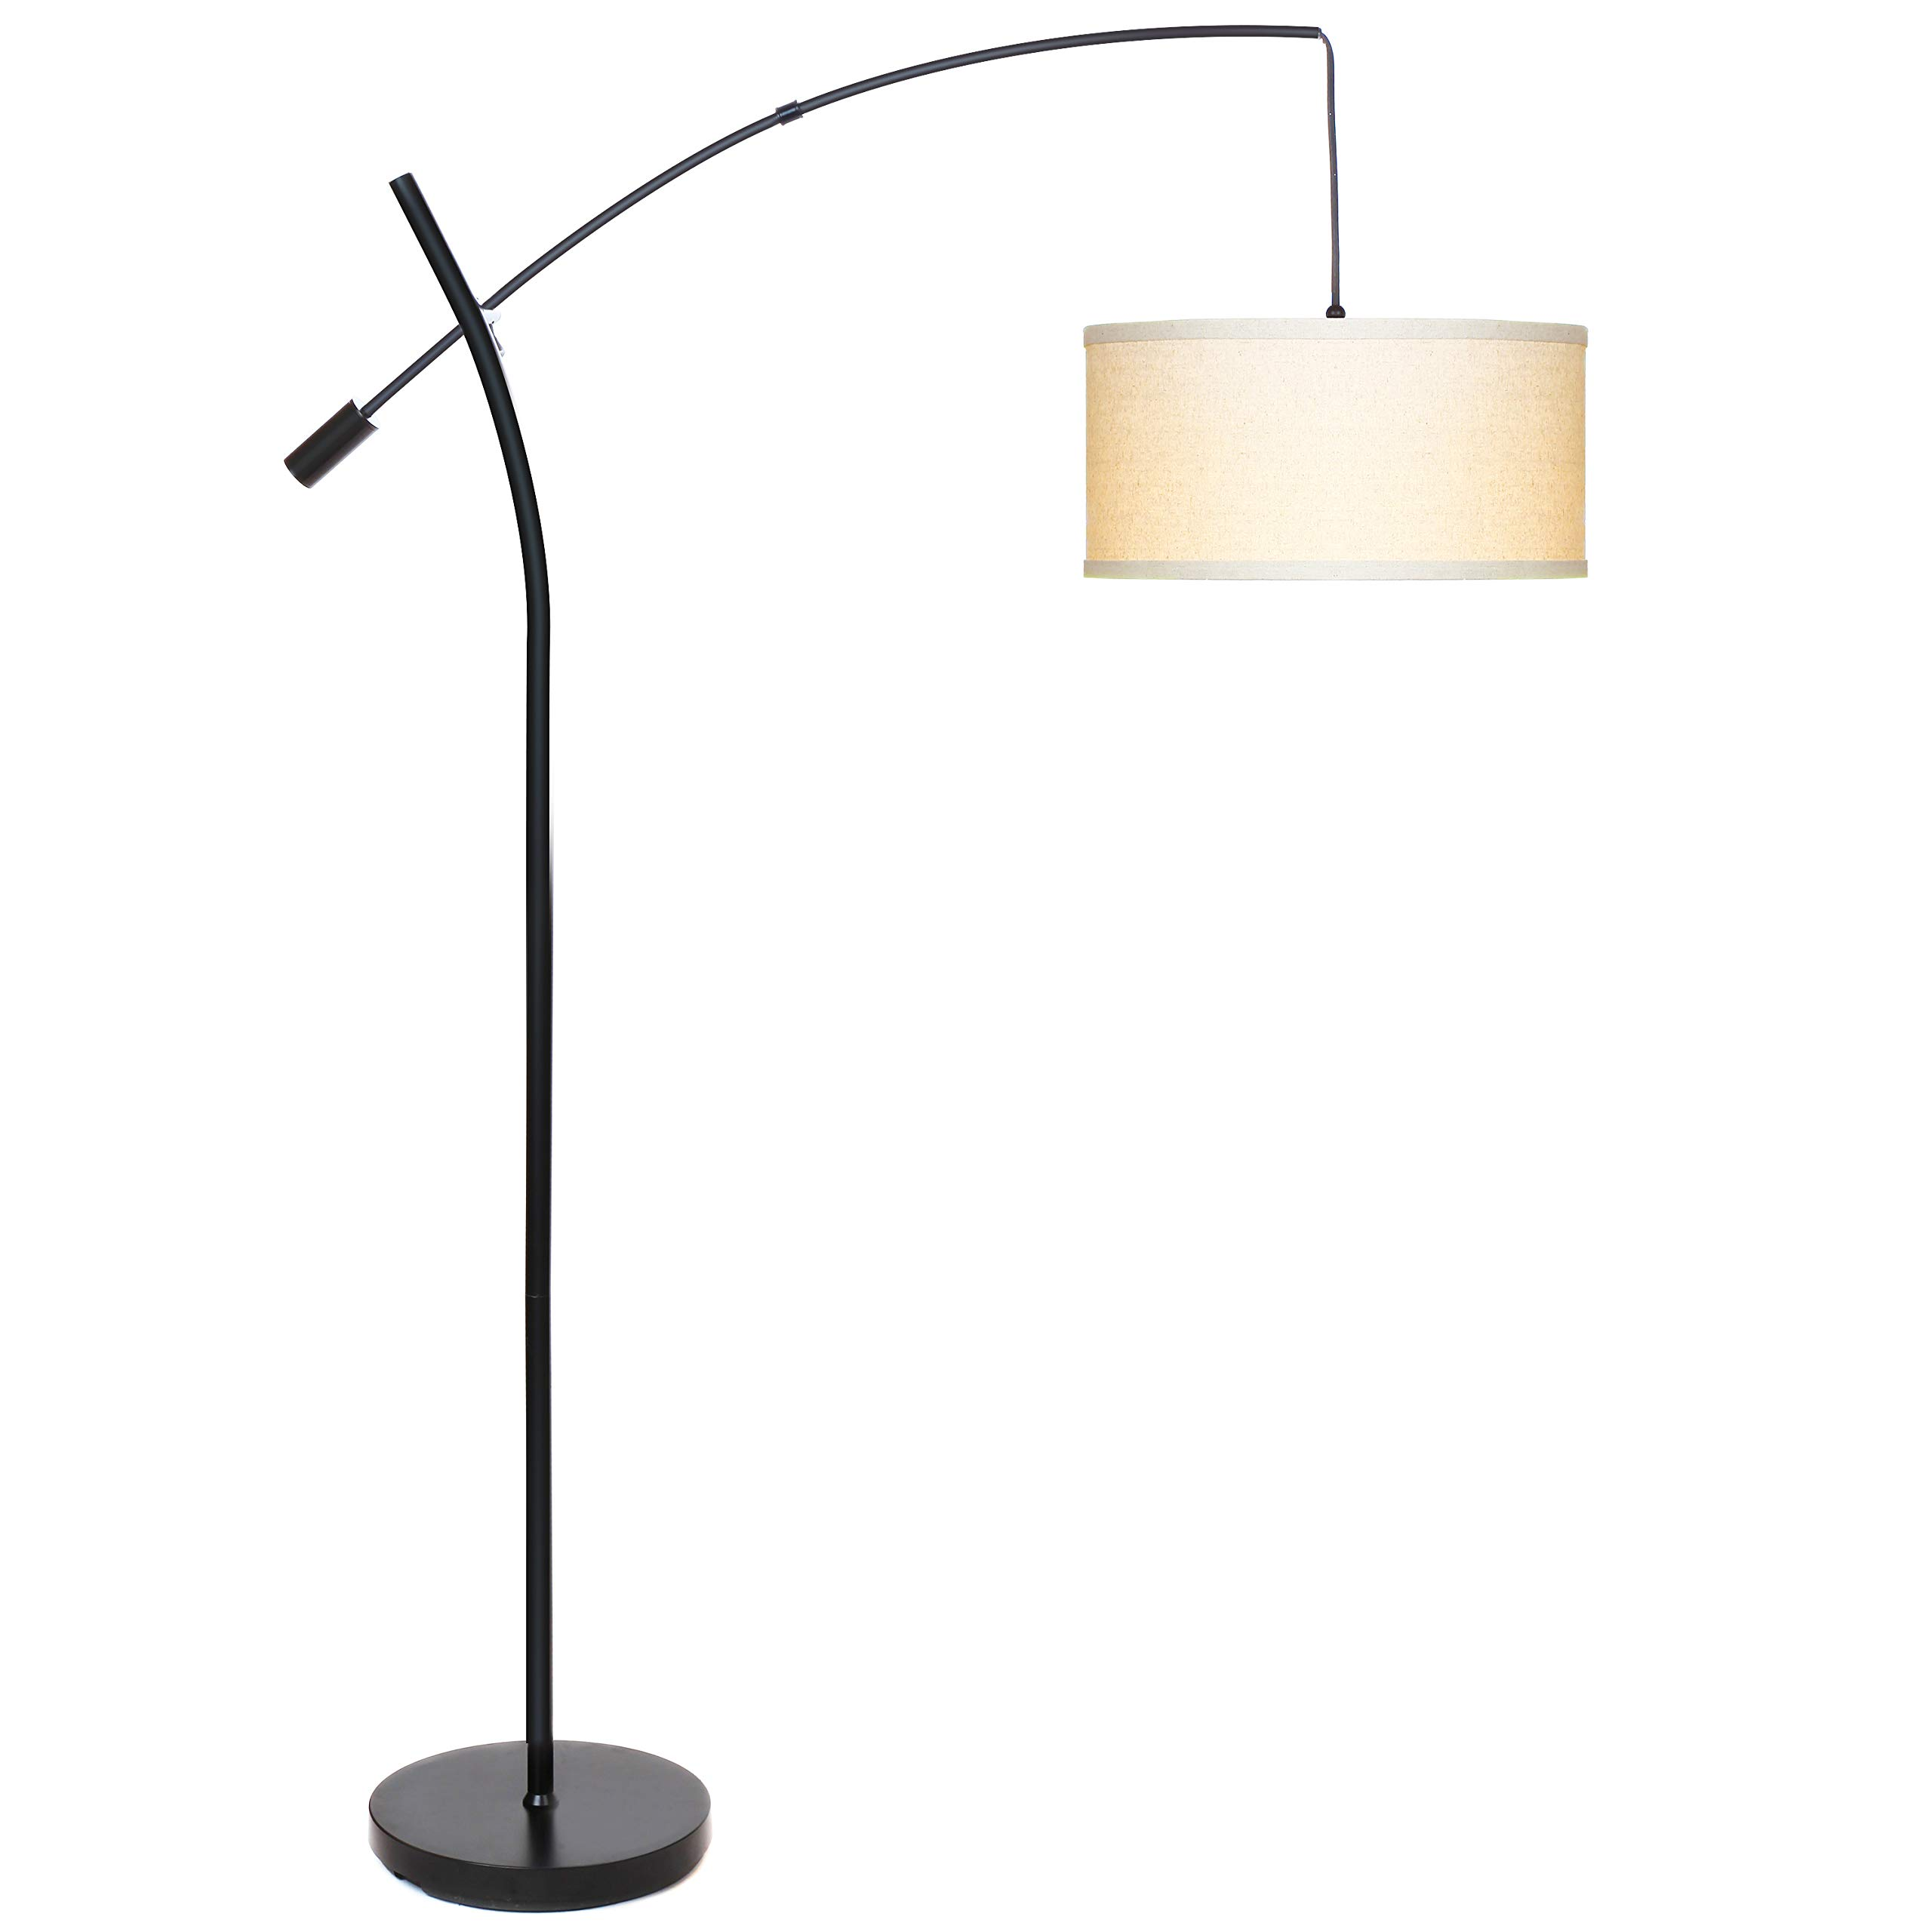 Brightech Grayson LED Arcing Floor Lamp- Tall Pole Standing Light for Living Room Den Office Bedroom – Adjustable Arm with Hanging Pendant Shade - Black